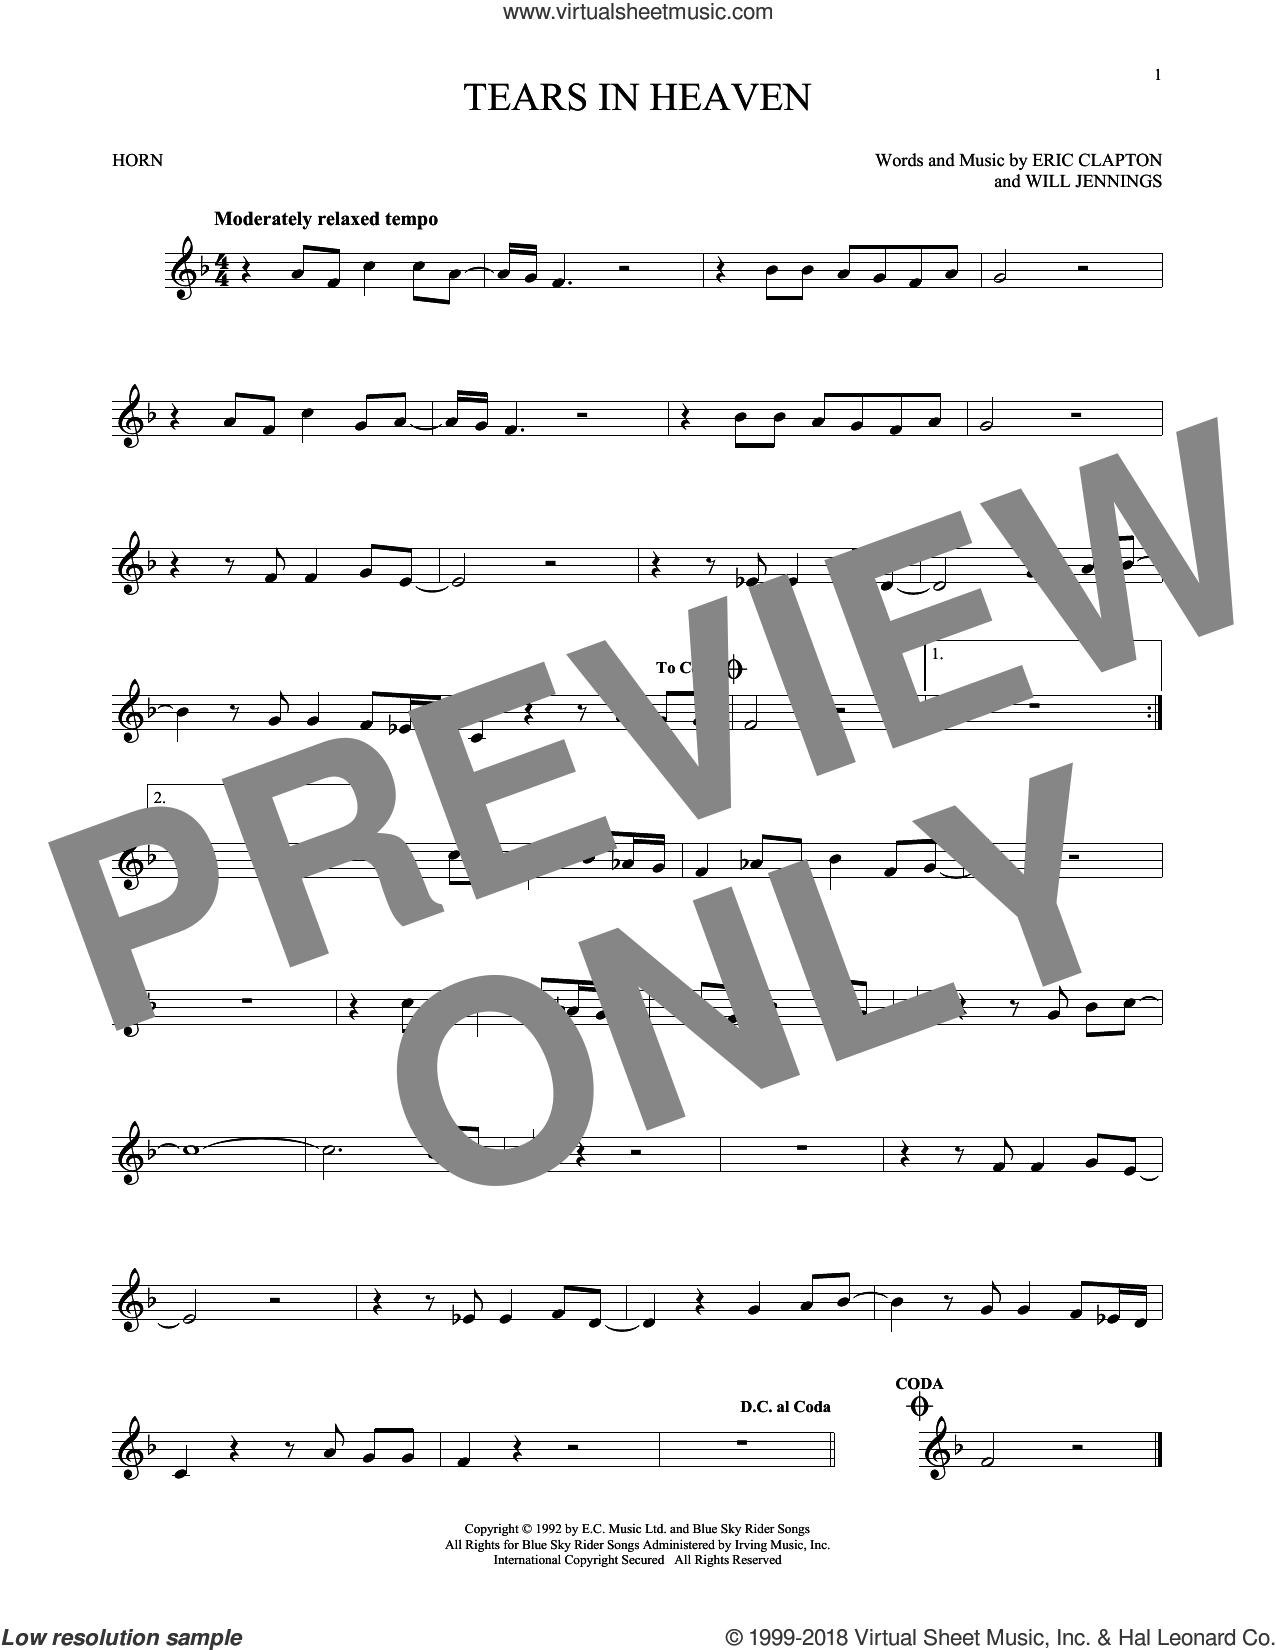 Tears In Heaven sheet music for horn solo by Eric Clapton and Will Jennings. Score Image Preview.